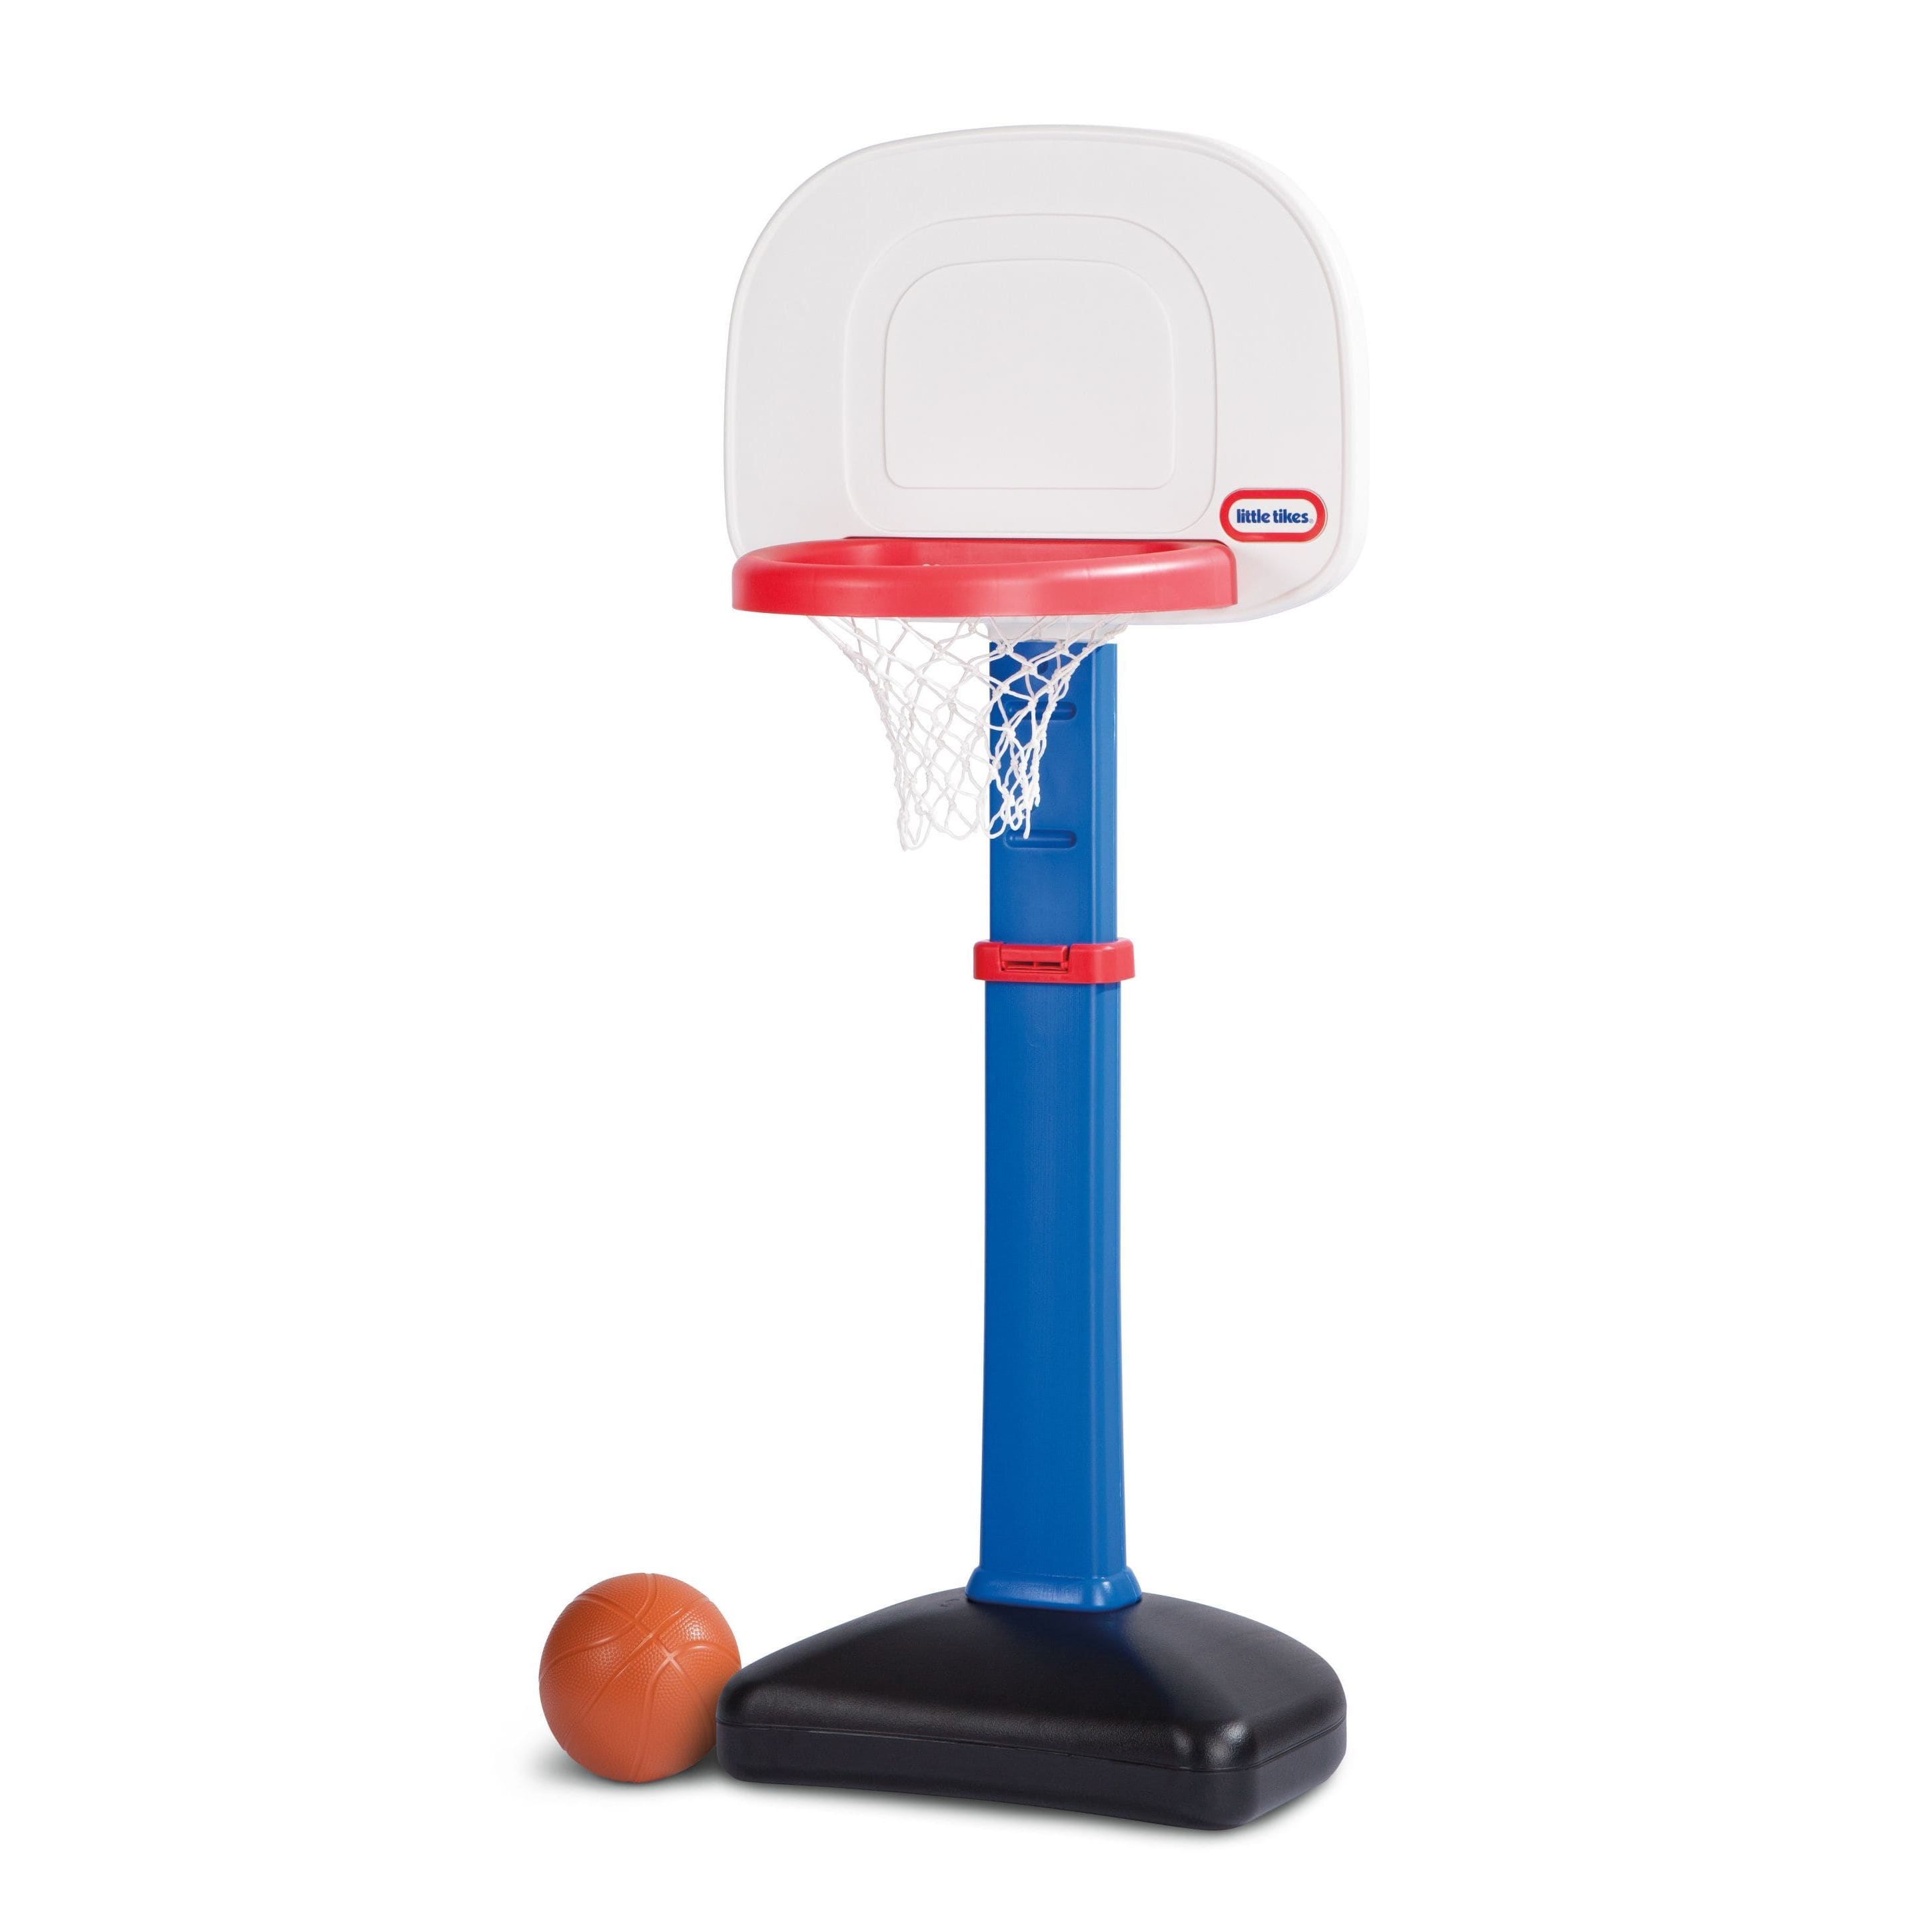 Little Tikes knows it's important for kids to stay active! The Attach 'n Play basketball set fits easily over doors or to regular basketball posts to help kids jump into the game! Black Friday – up to 40% off.